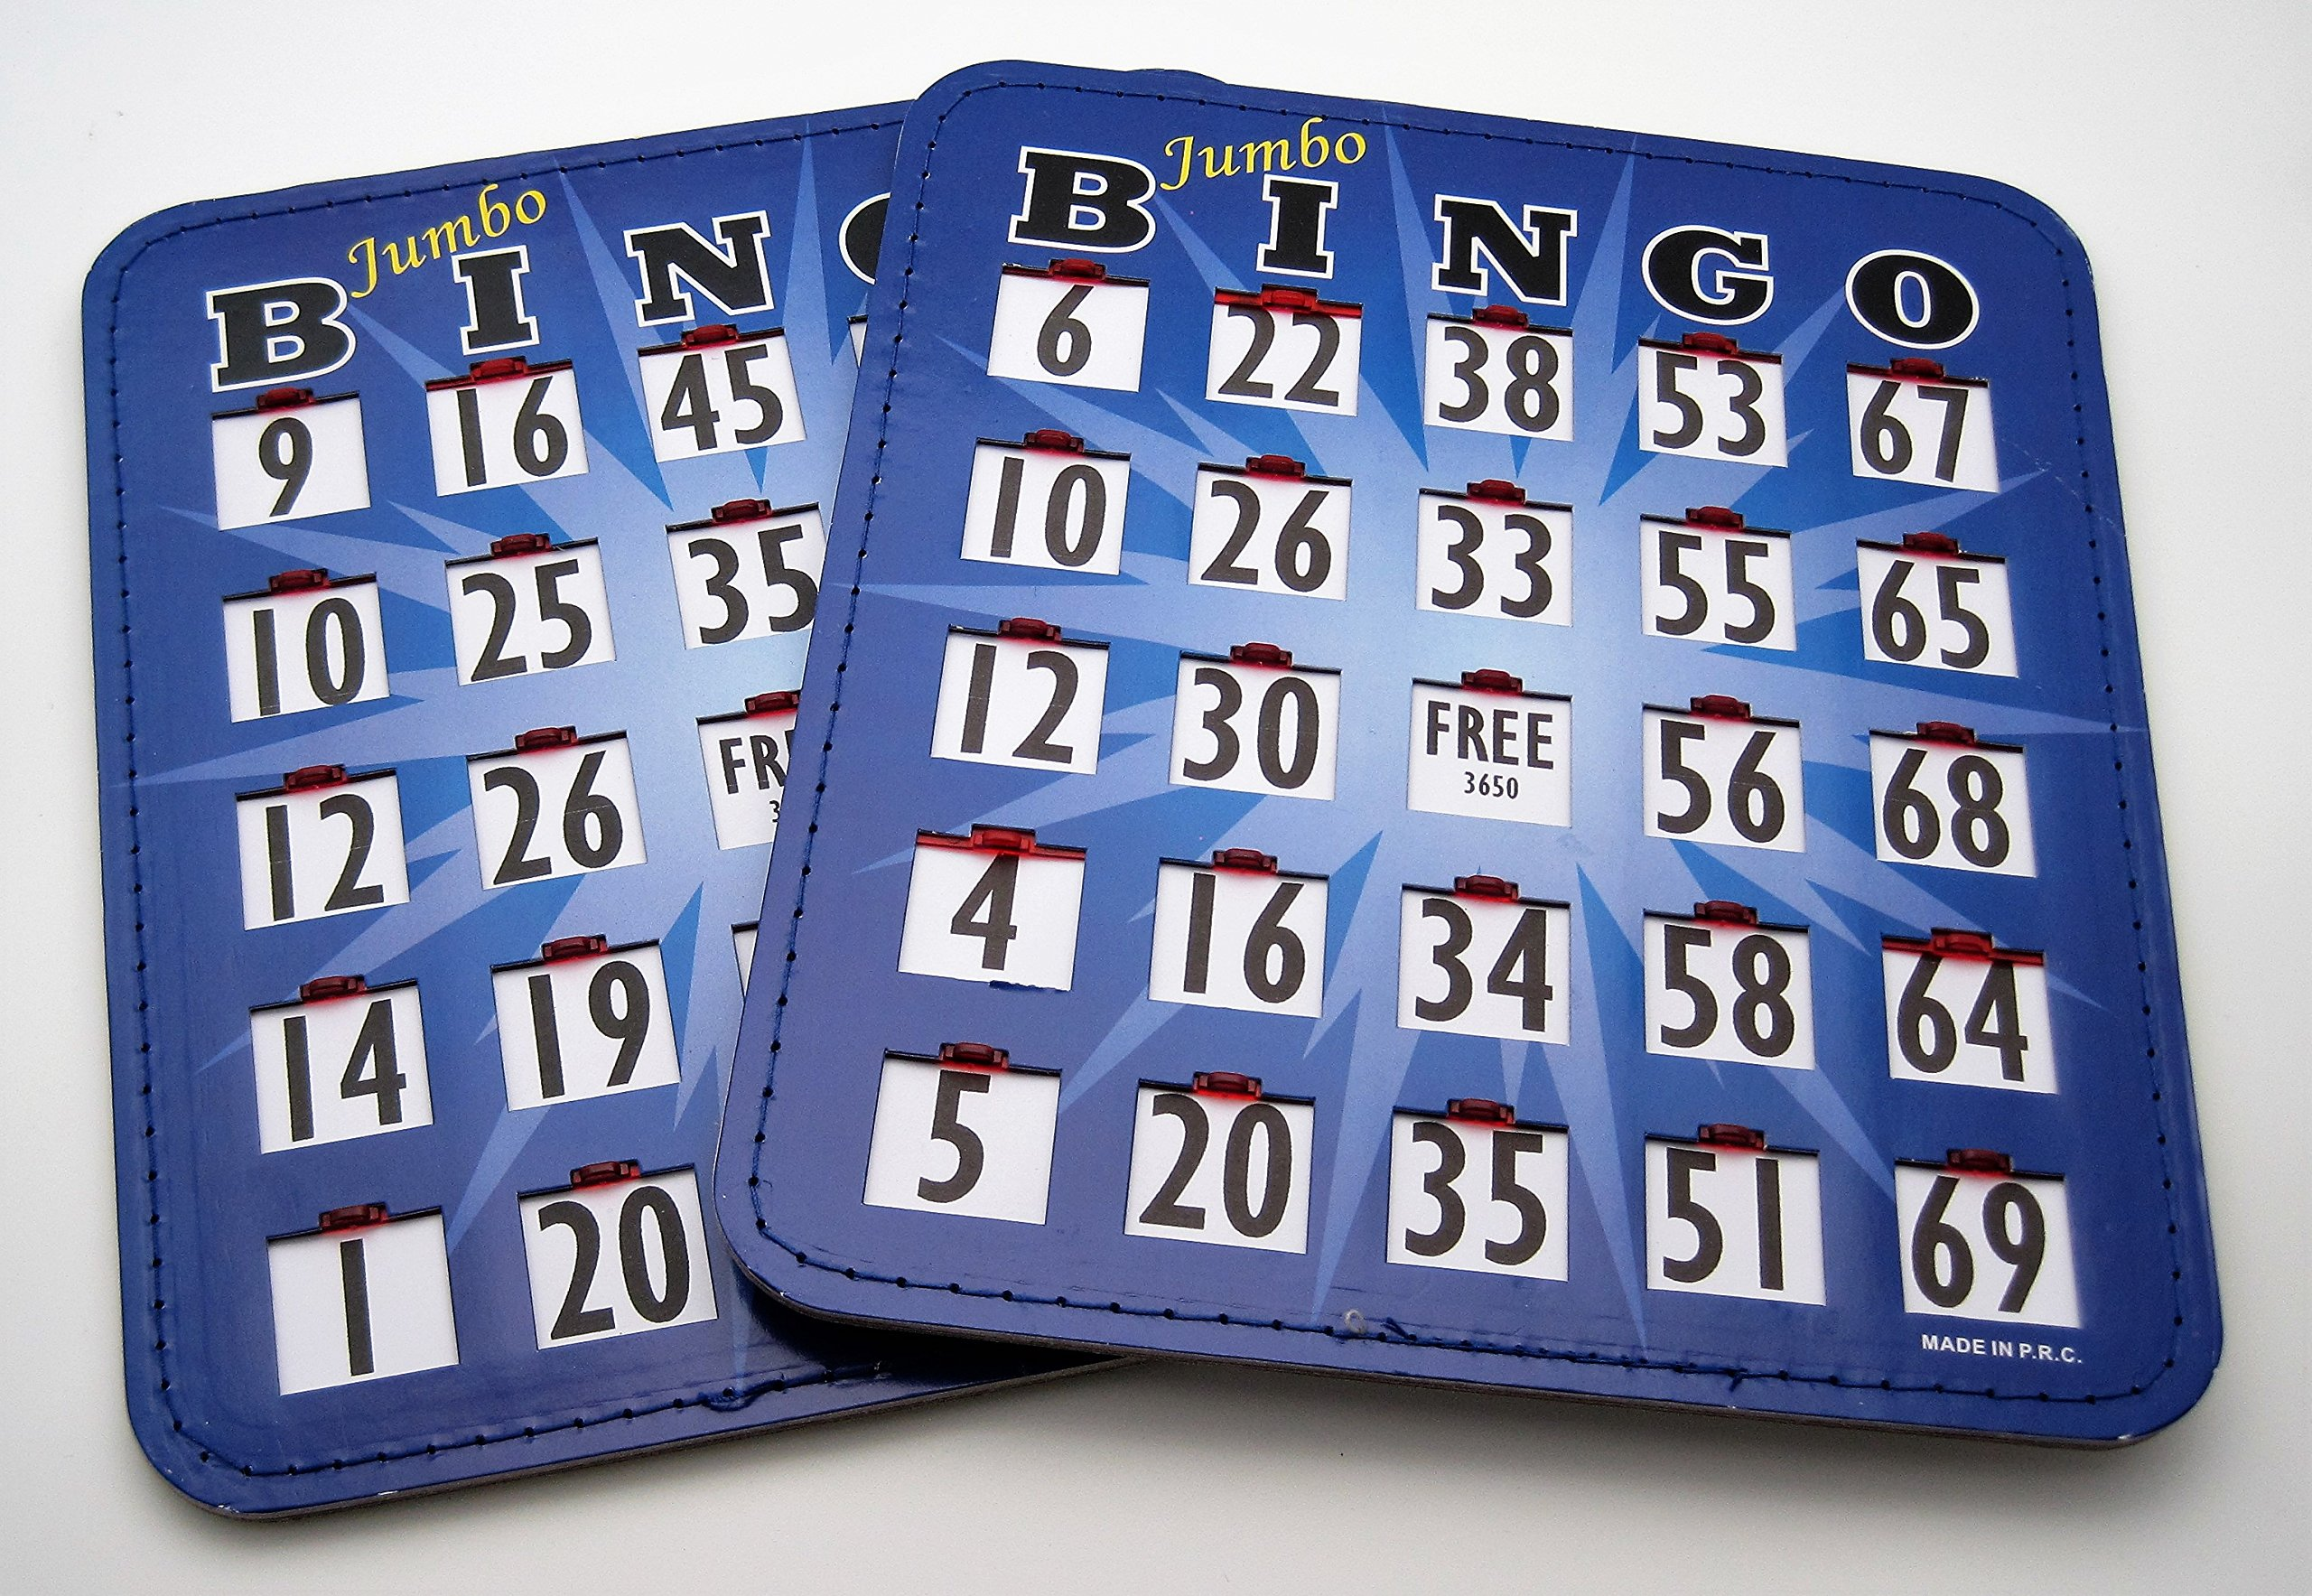 Pair (2) of Jumbo Bingo Cards